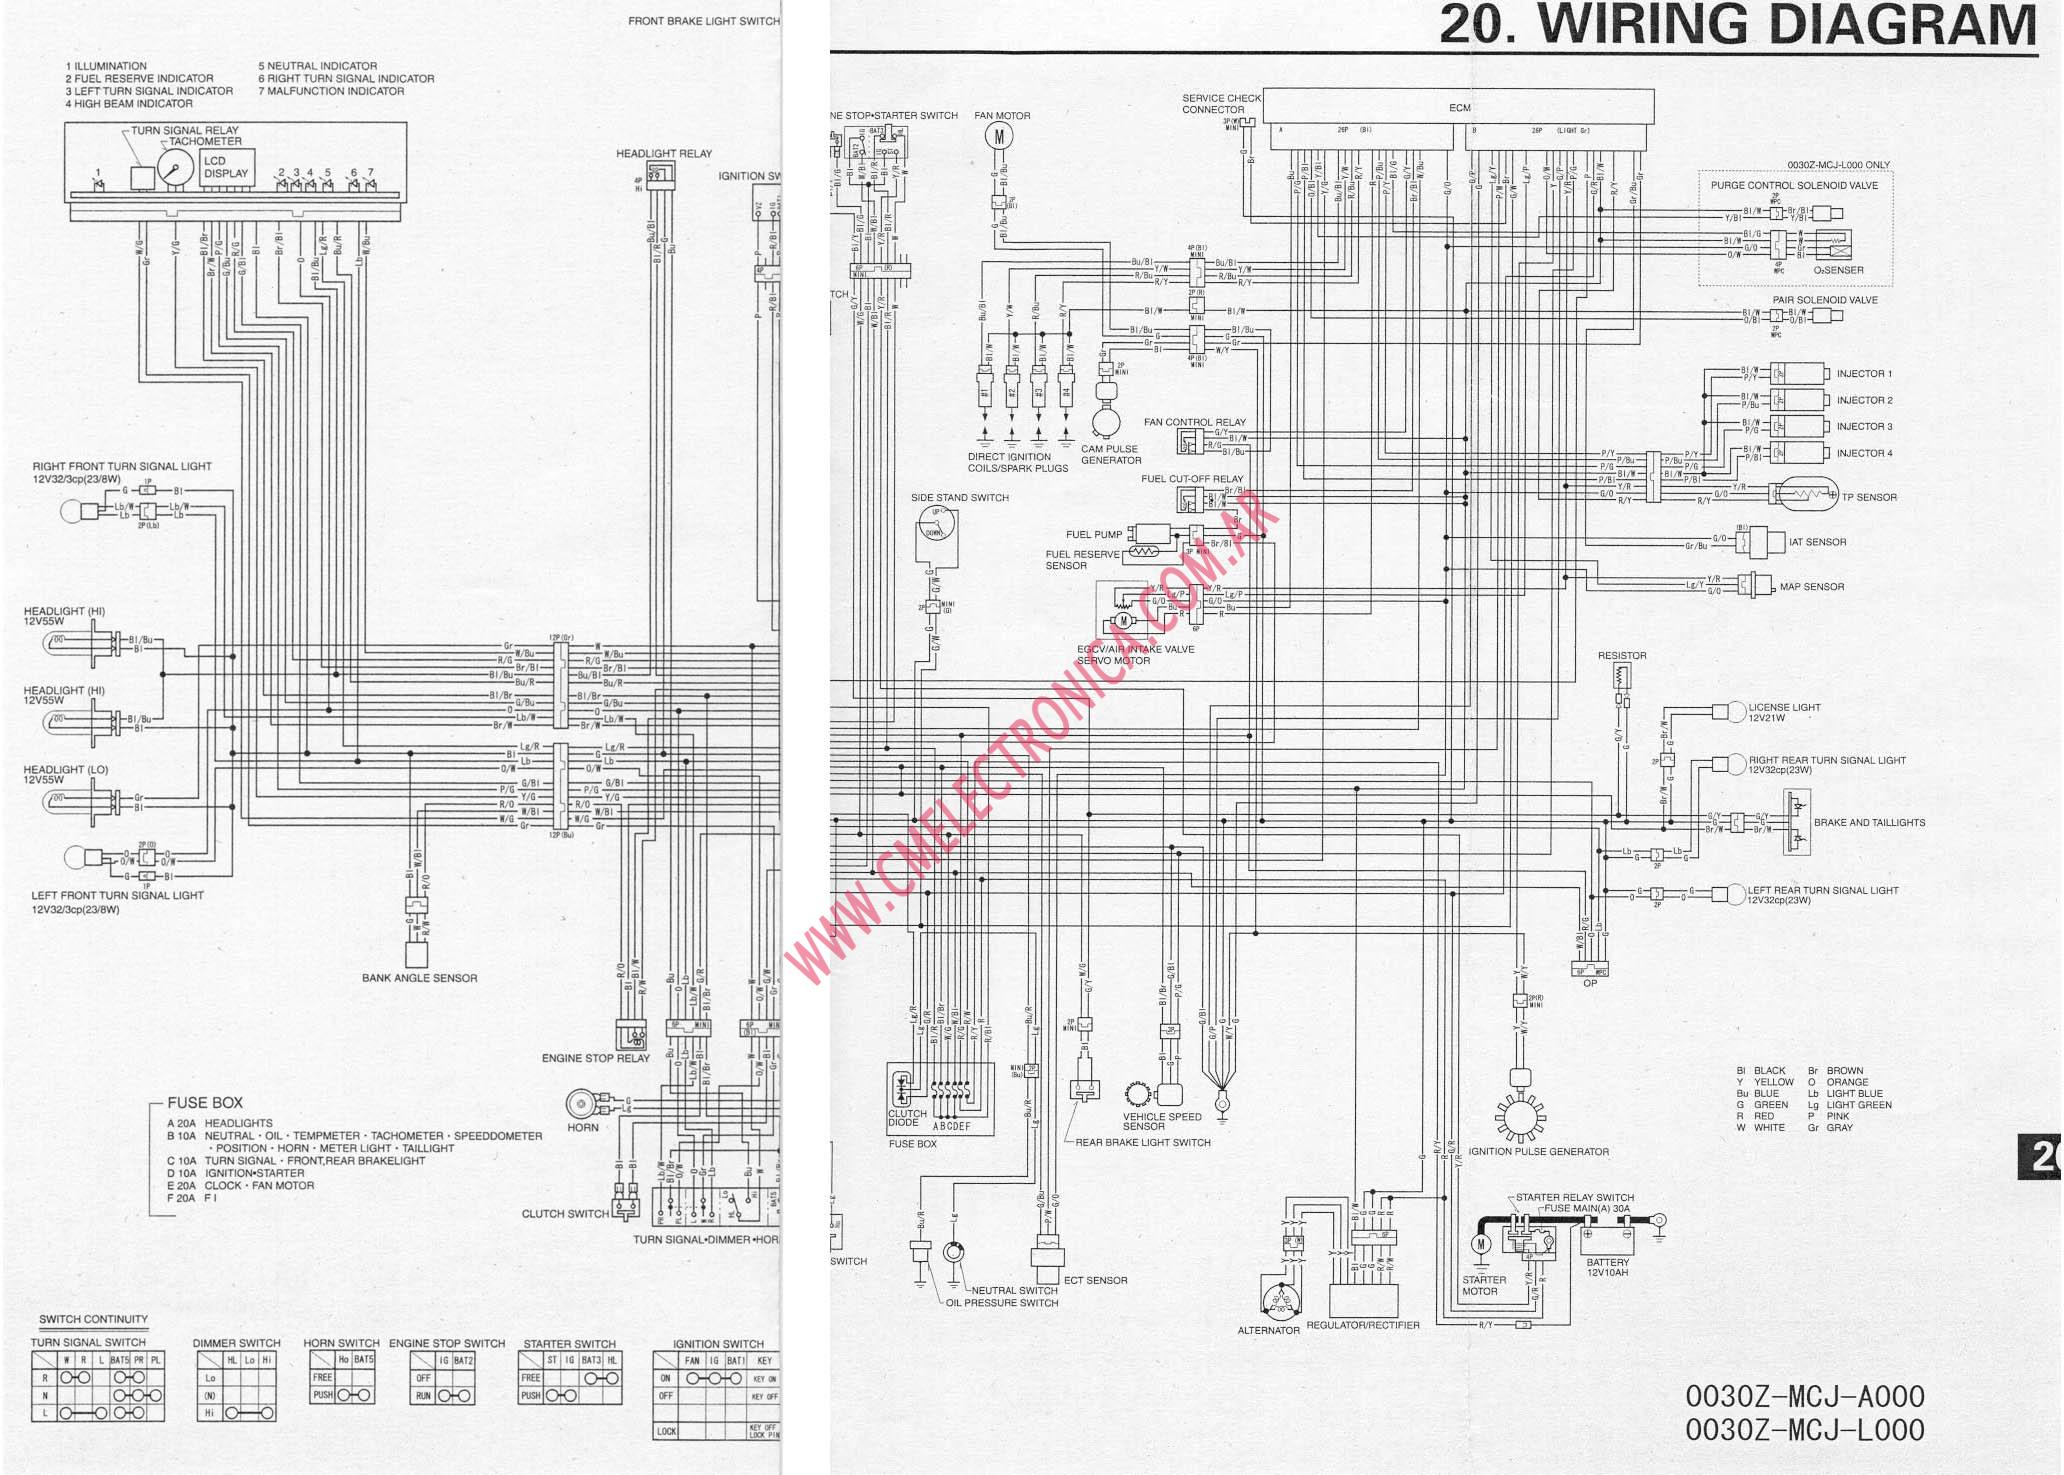 Chm 250 Wiring Diagram Detailed 3 Way Switch Led Diagrams Circuit Cbr 600 Likewise Polaris Trail